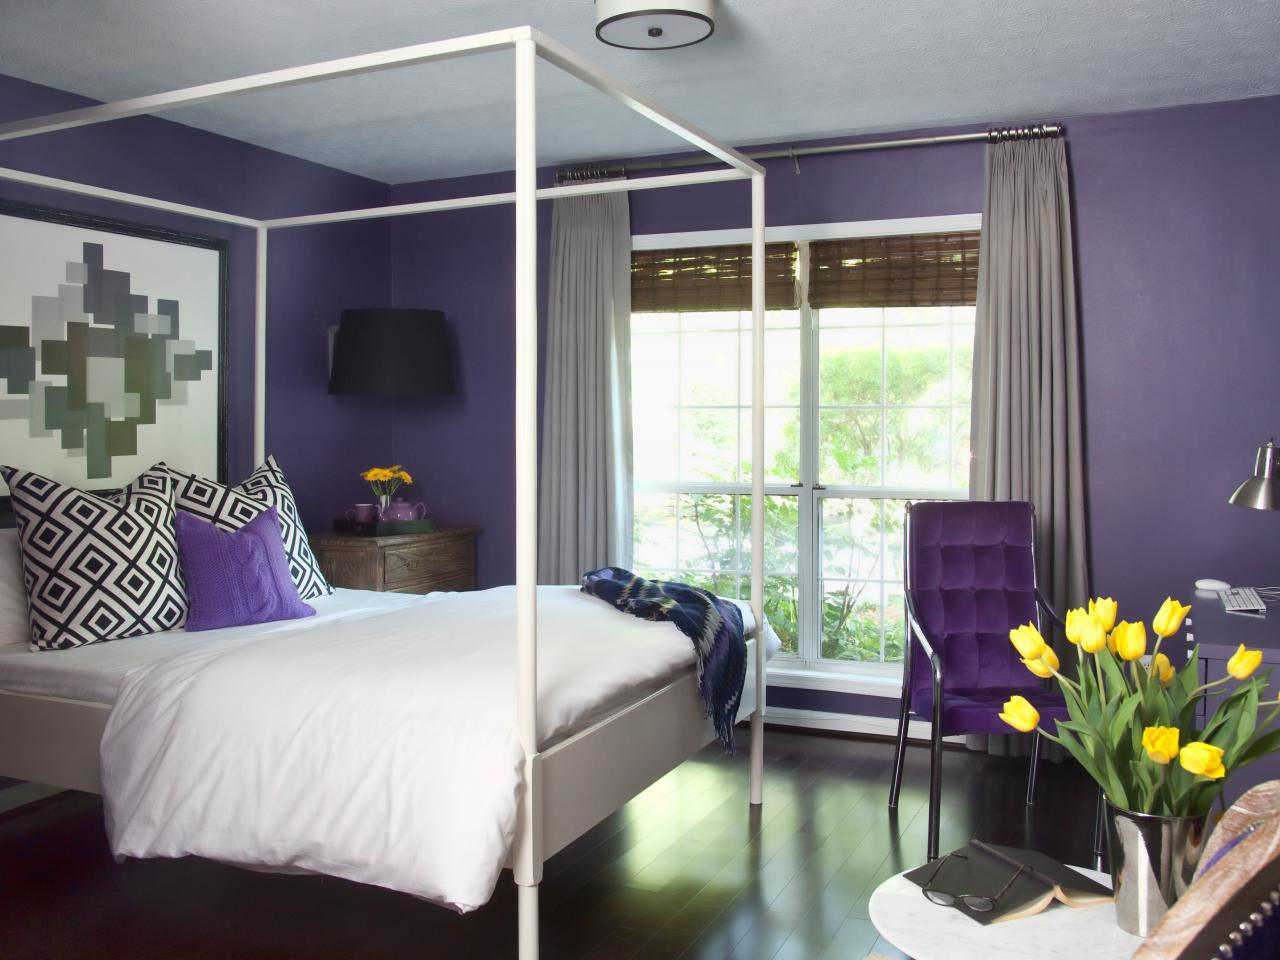 bedroom color combination Master Bedroom Color Combinations: Pictures, Options & Ideas | HGTV 960 X 1280